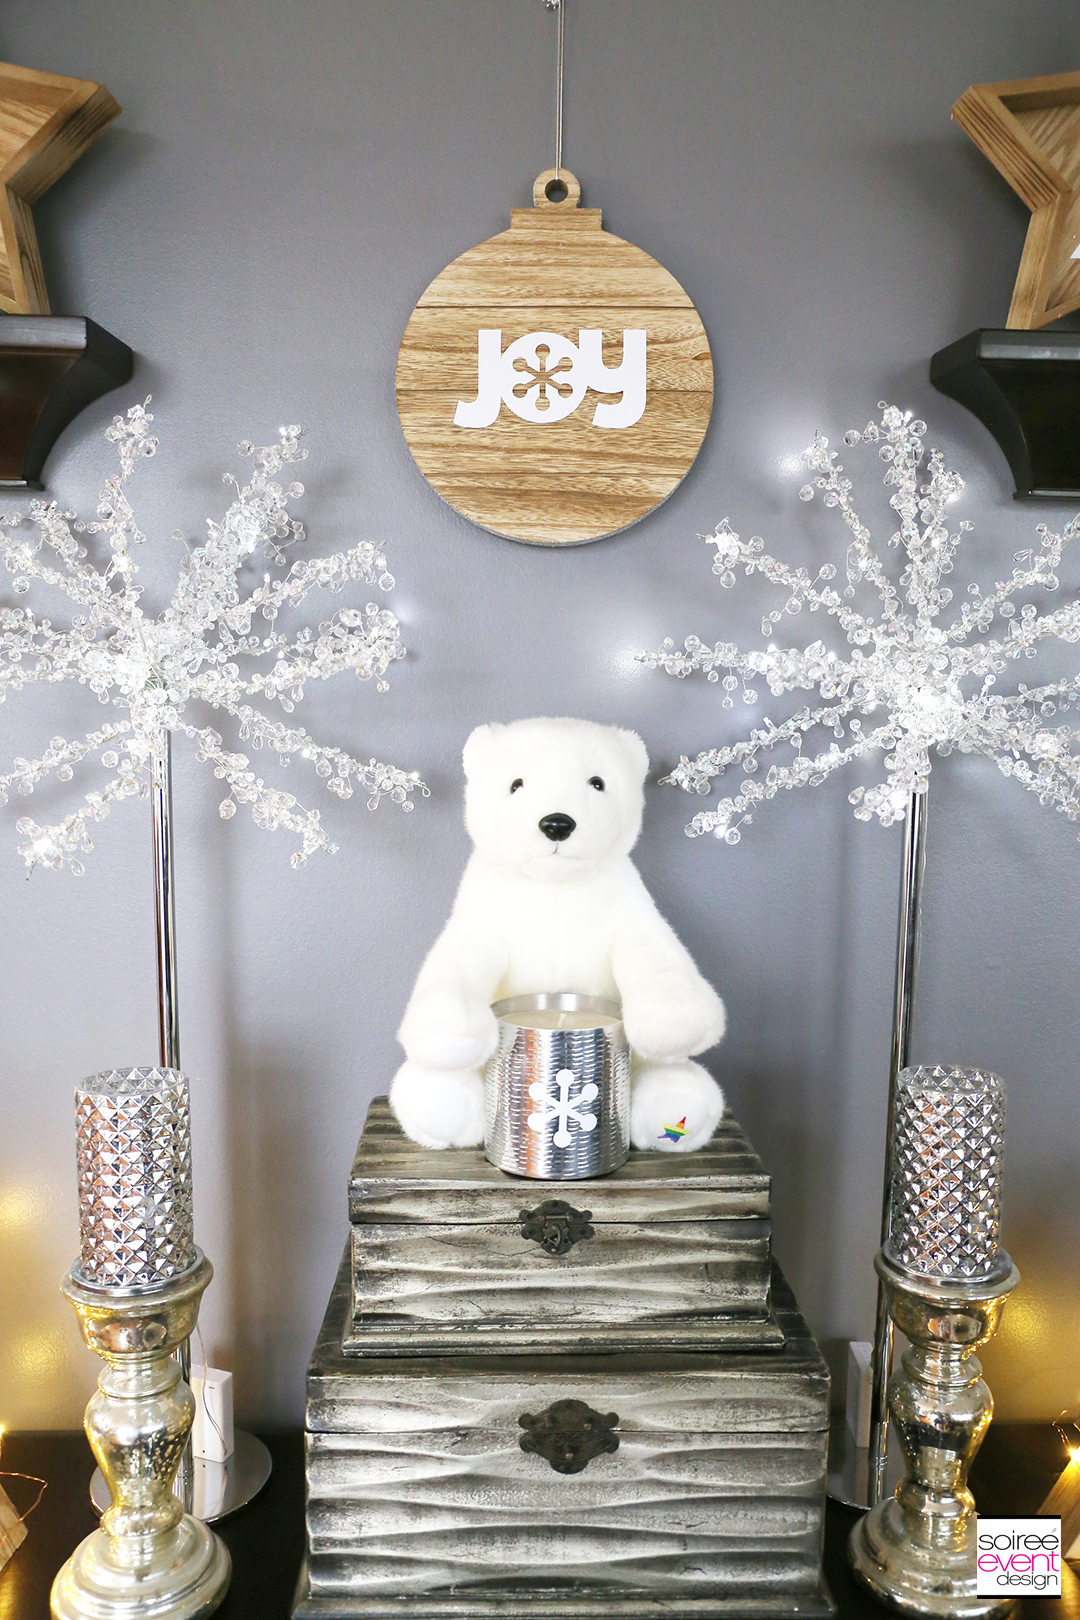 Farmhouse Holiday Decorations - Stocking Mantel Table 1